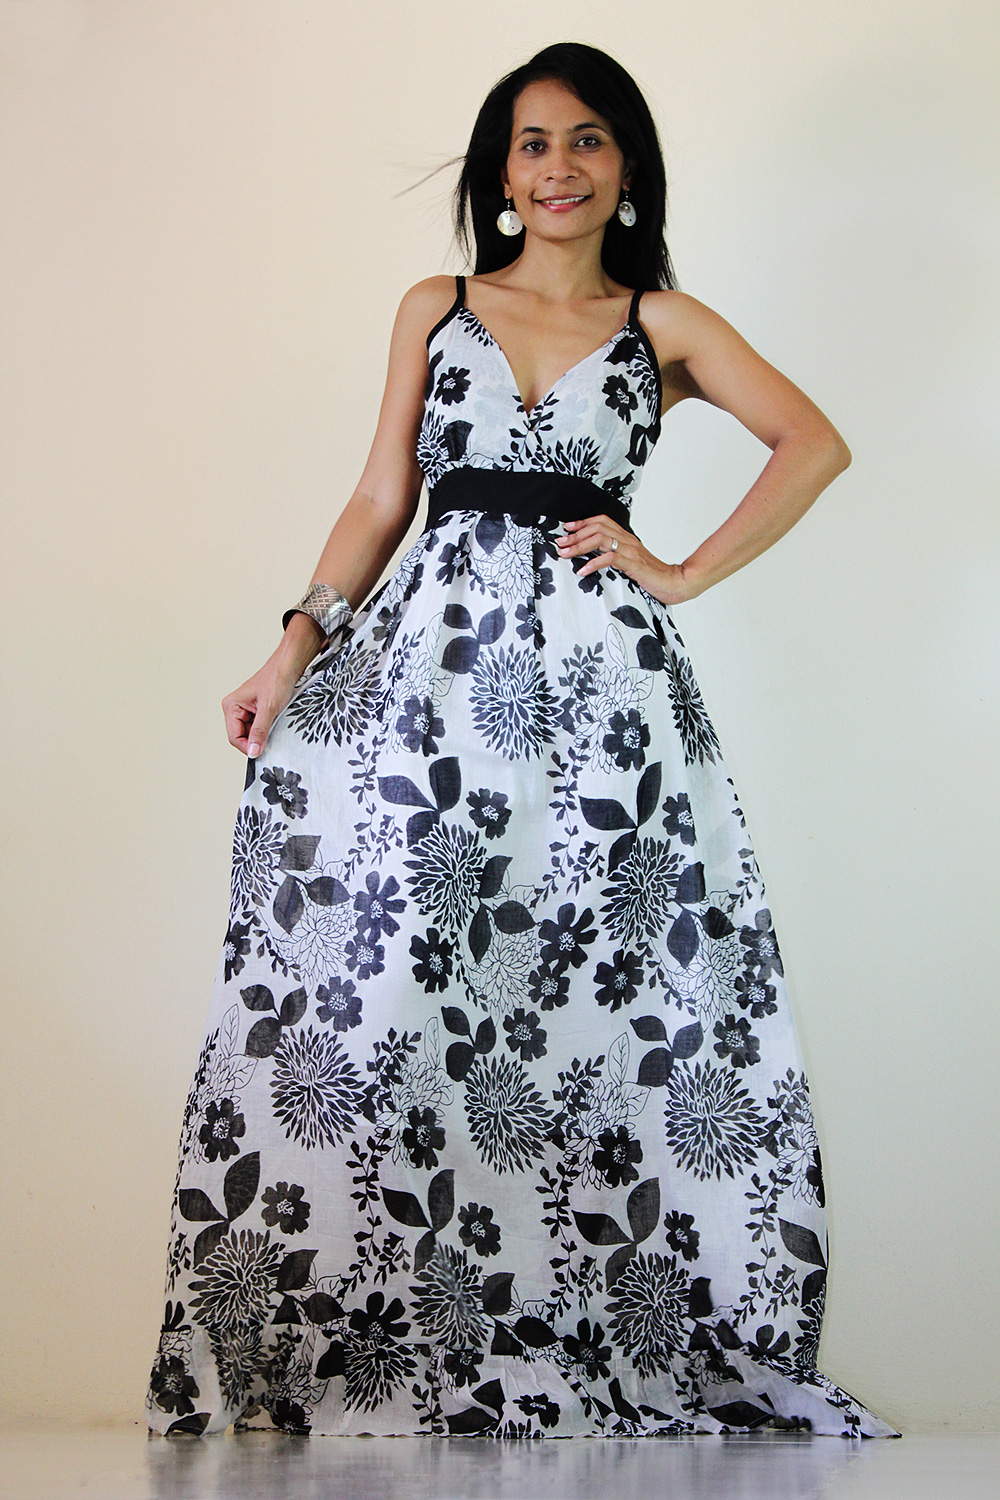 Floral Maxi Dress Black And White Summer Cotton Cute V Neck ...